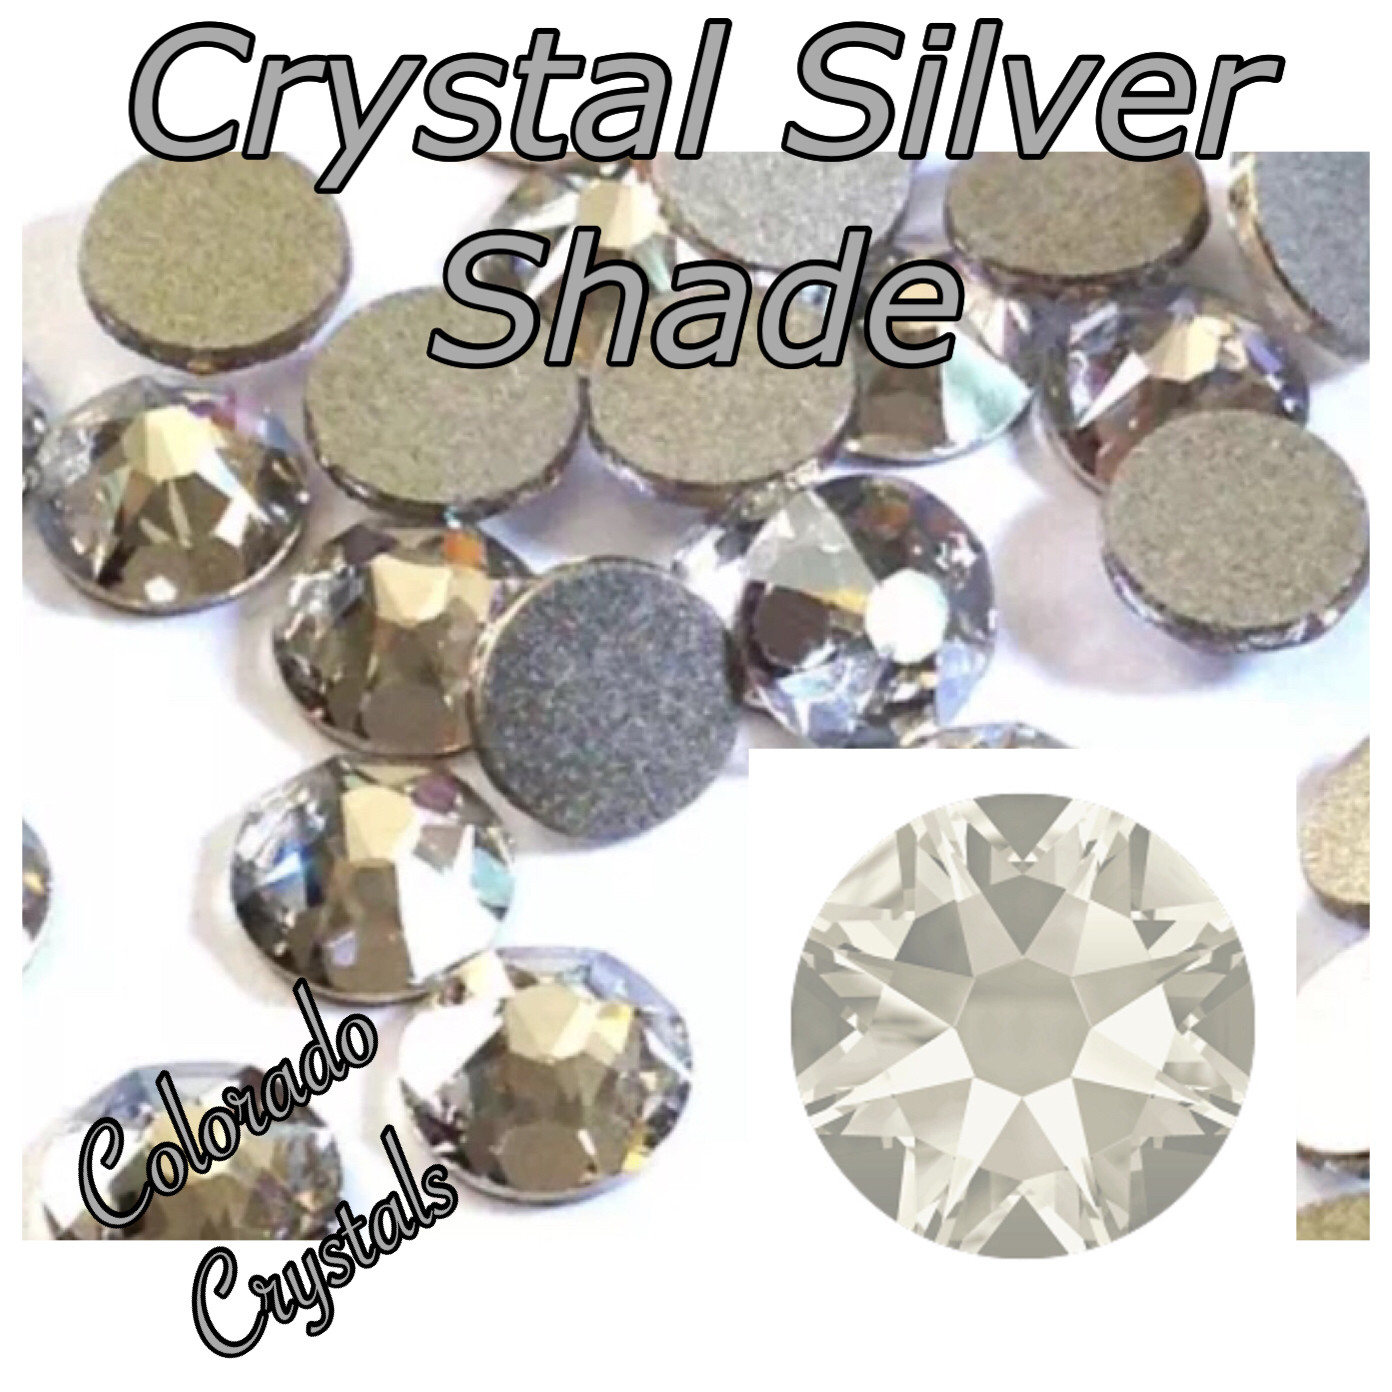 Silver Shade (Crystal) 12ss 2088 Limited